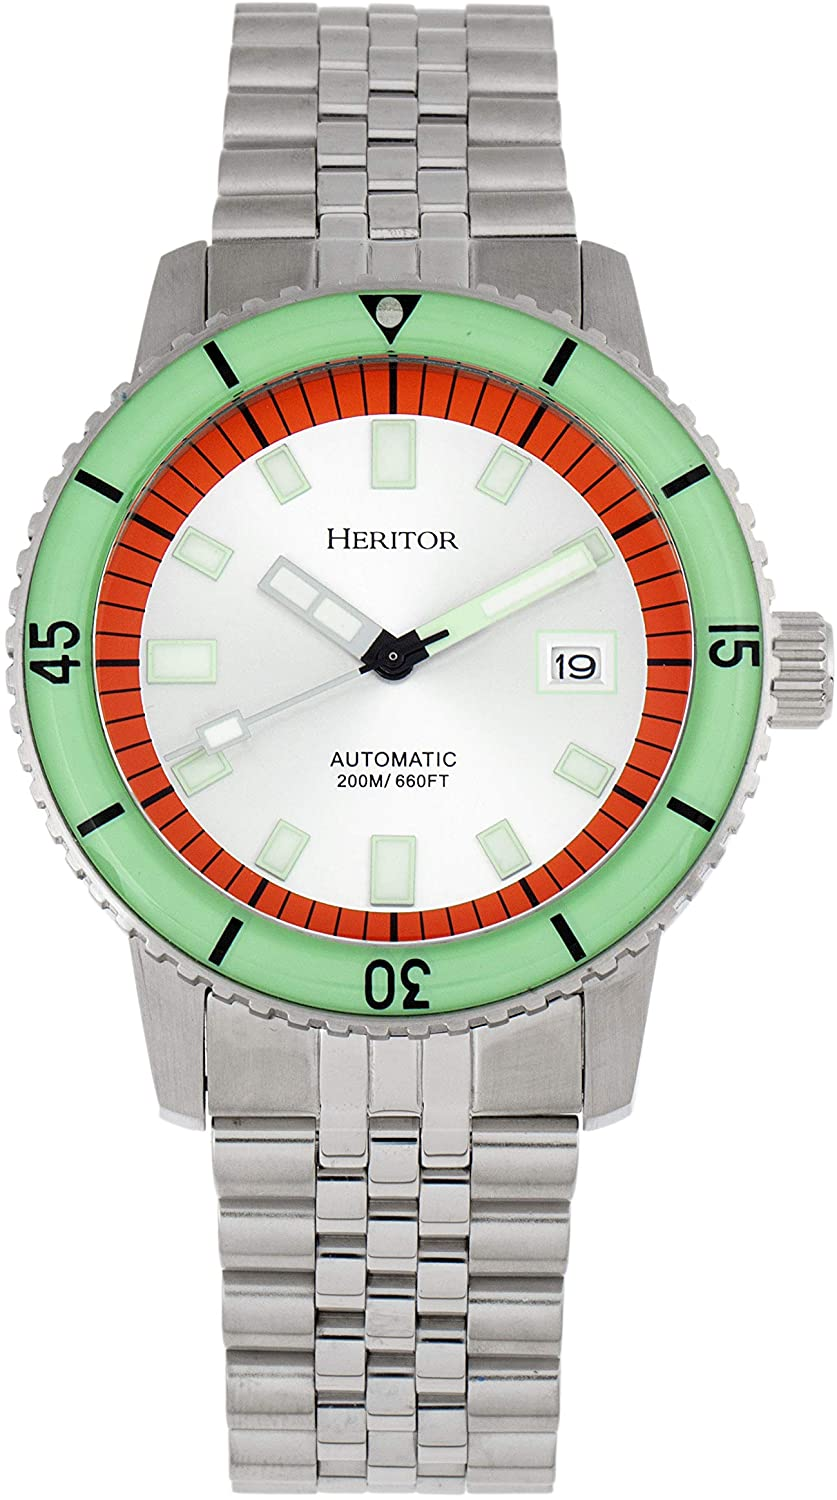 Heritor Automatic Edgard Bracelet Diver's Watch w/Date